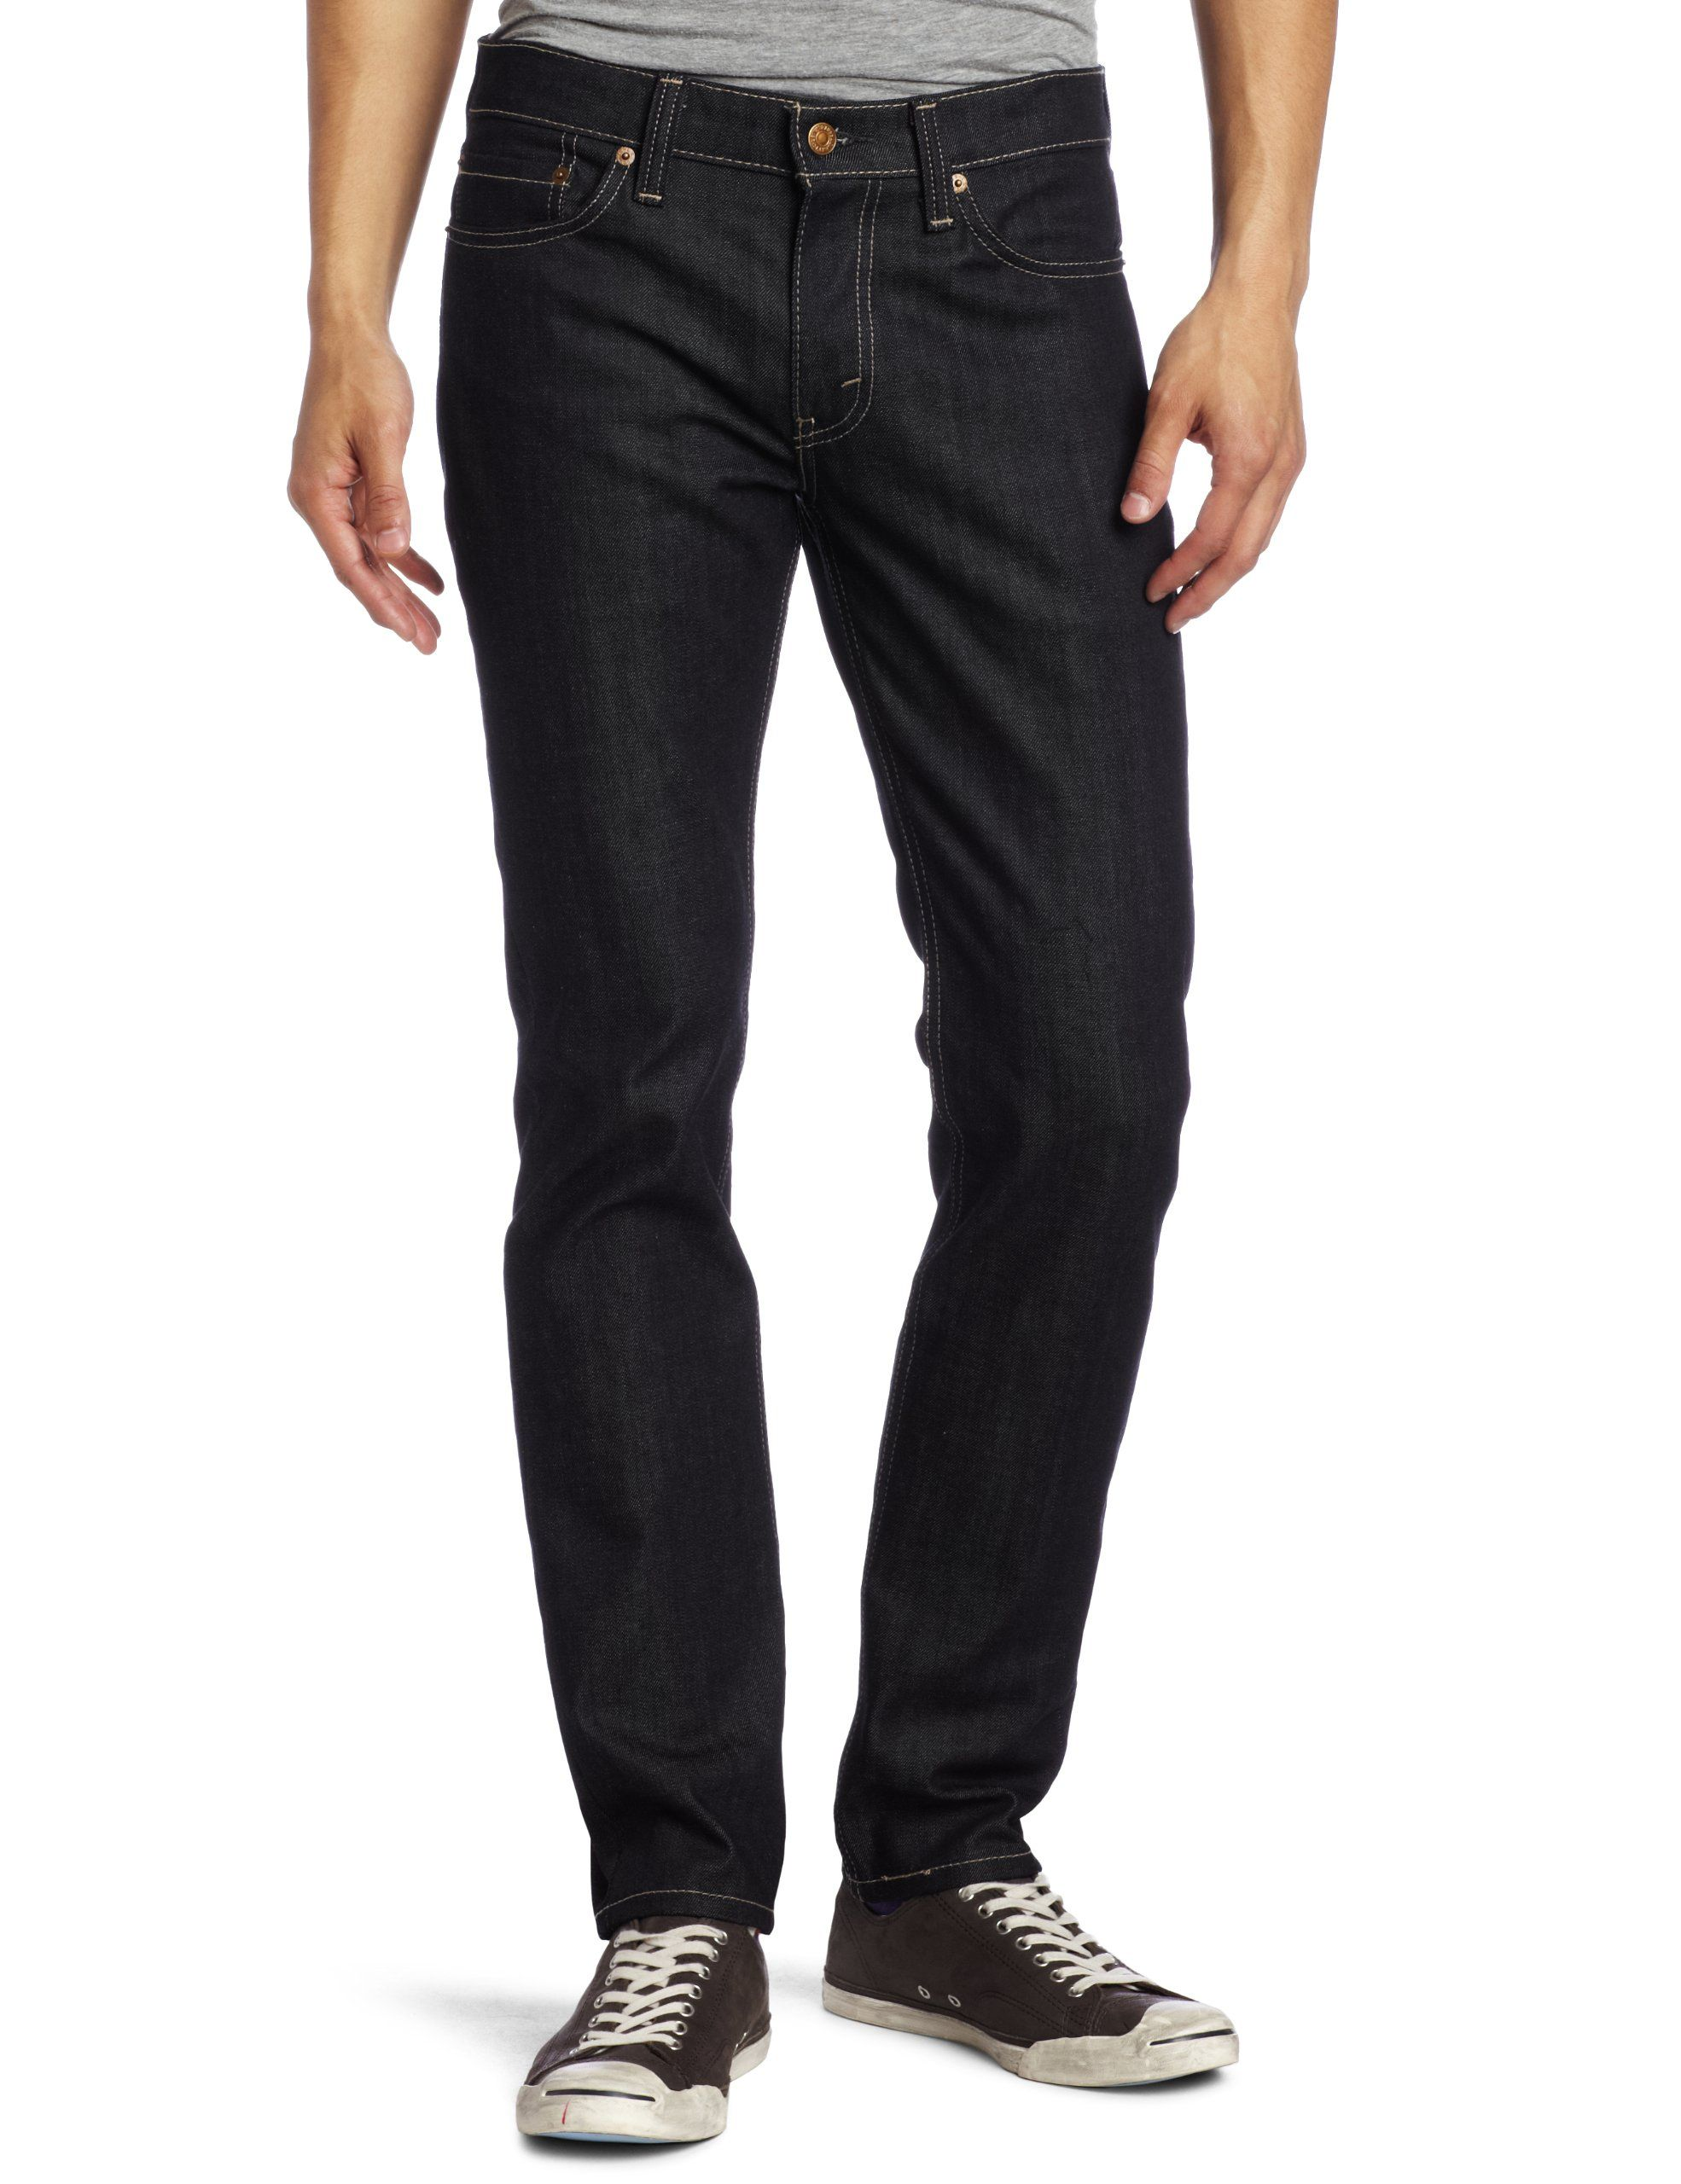 Levi's Men's Grey Jeans Slim 514 Straight Jeans ridig Buying This Holiday